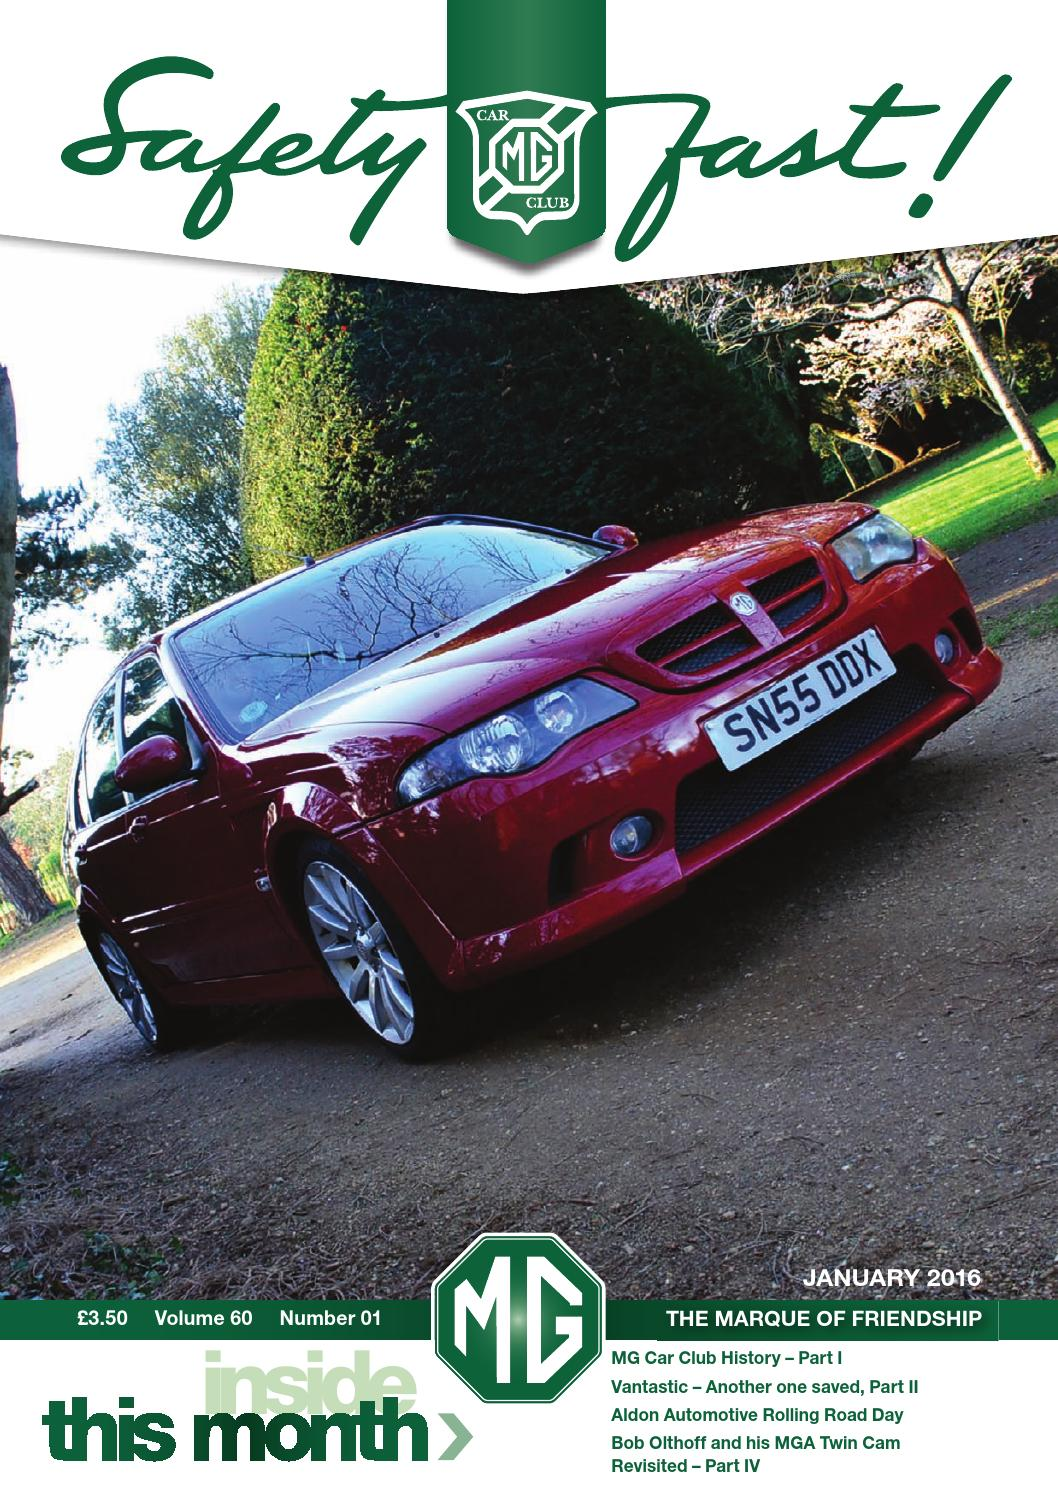 acccf6025b7 Safety Fast! January 2016 by MG Car Club - issuu